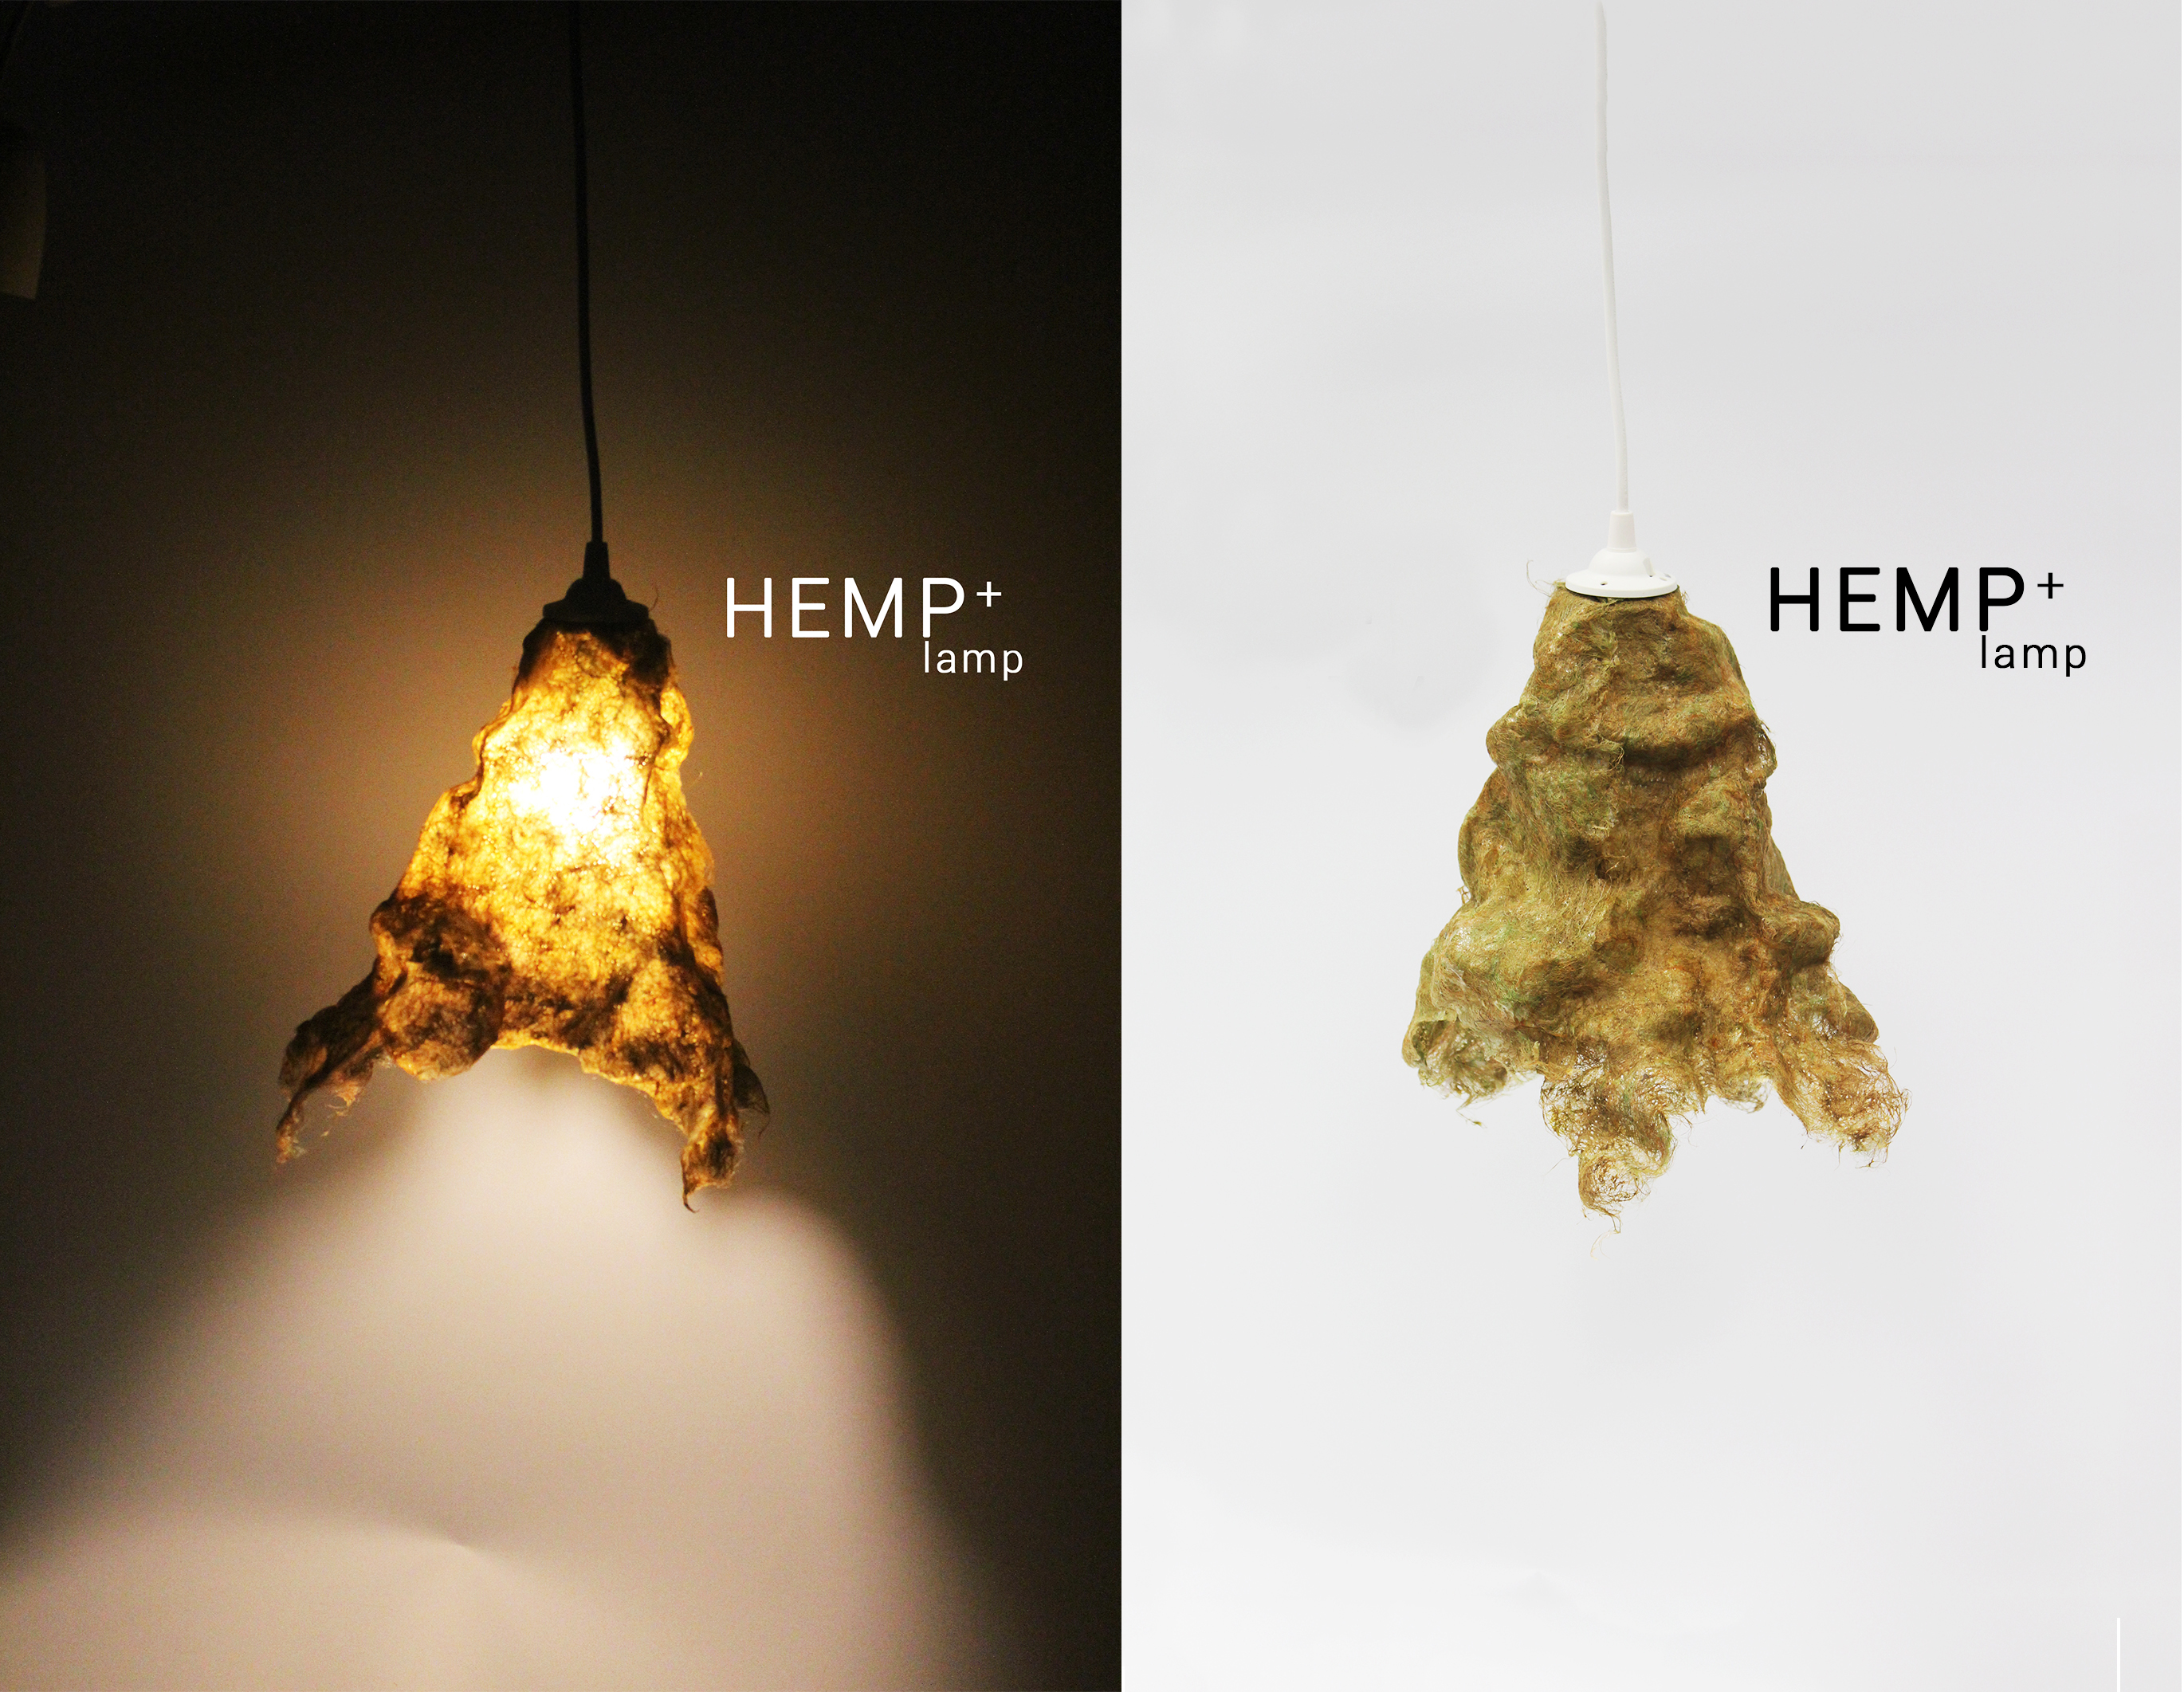 Hemp+ at NTU ADM Portfolio